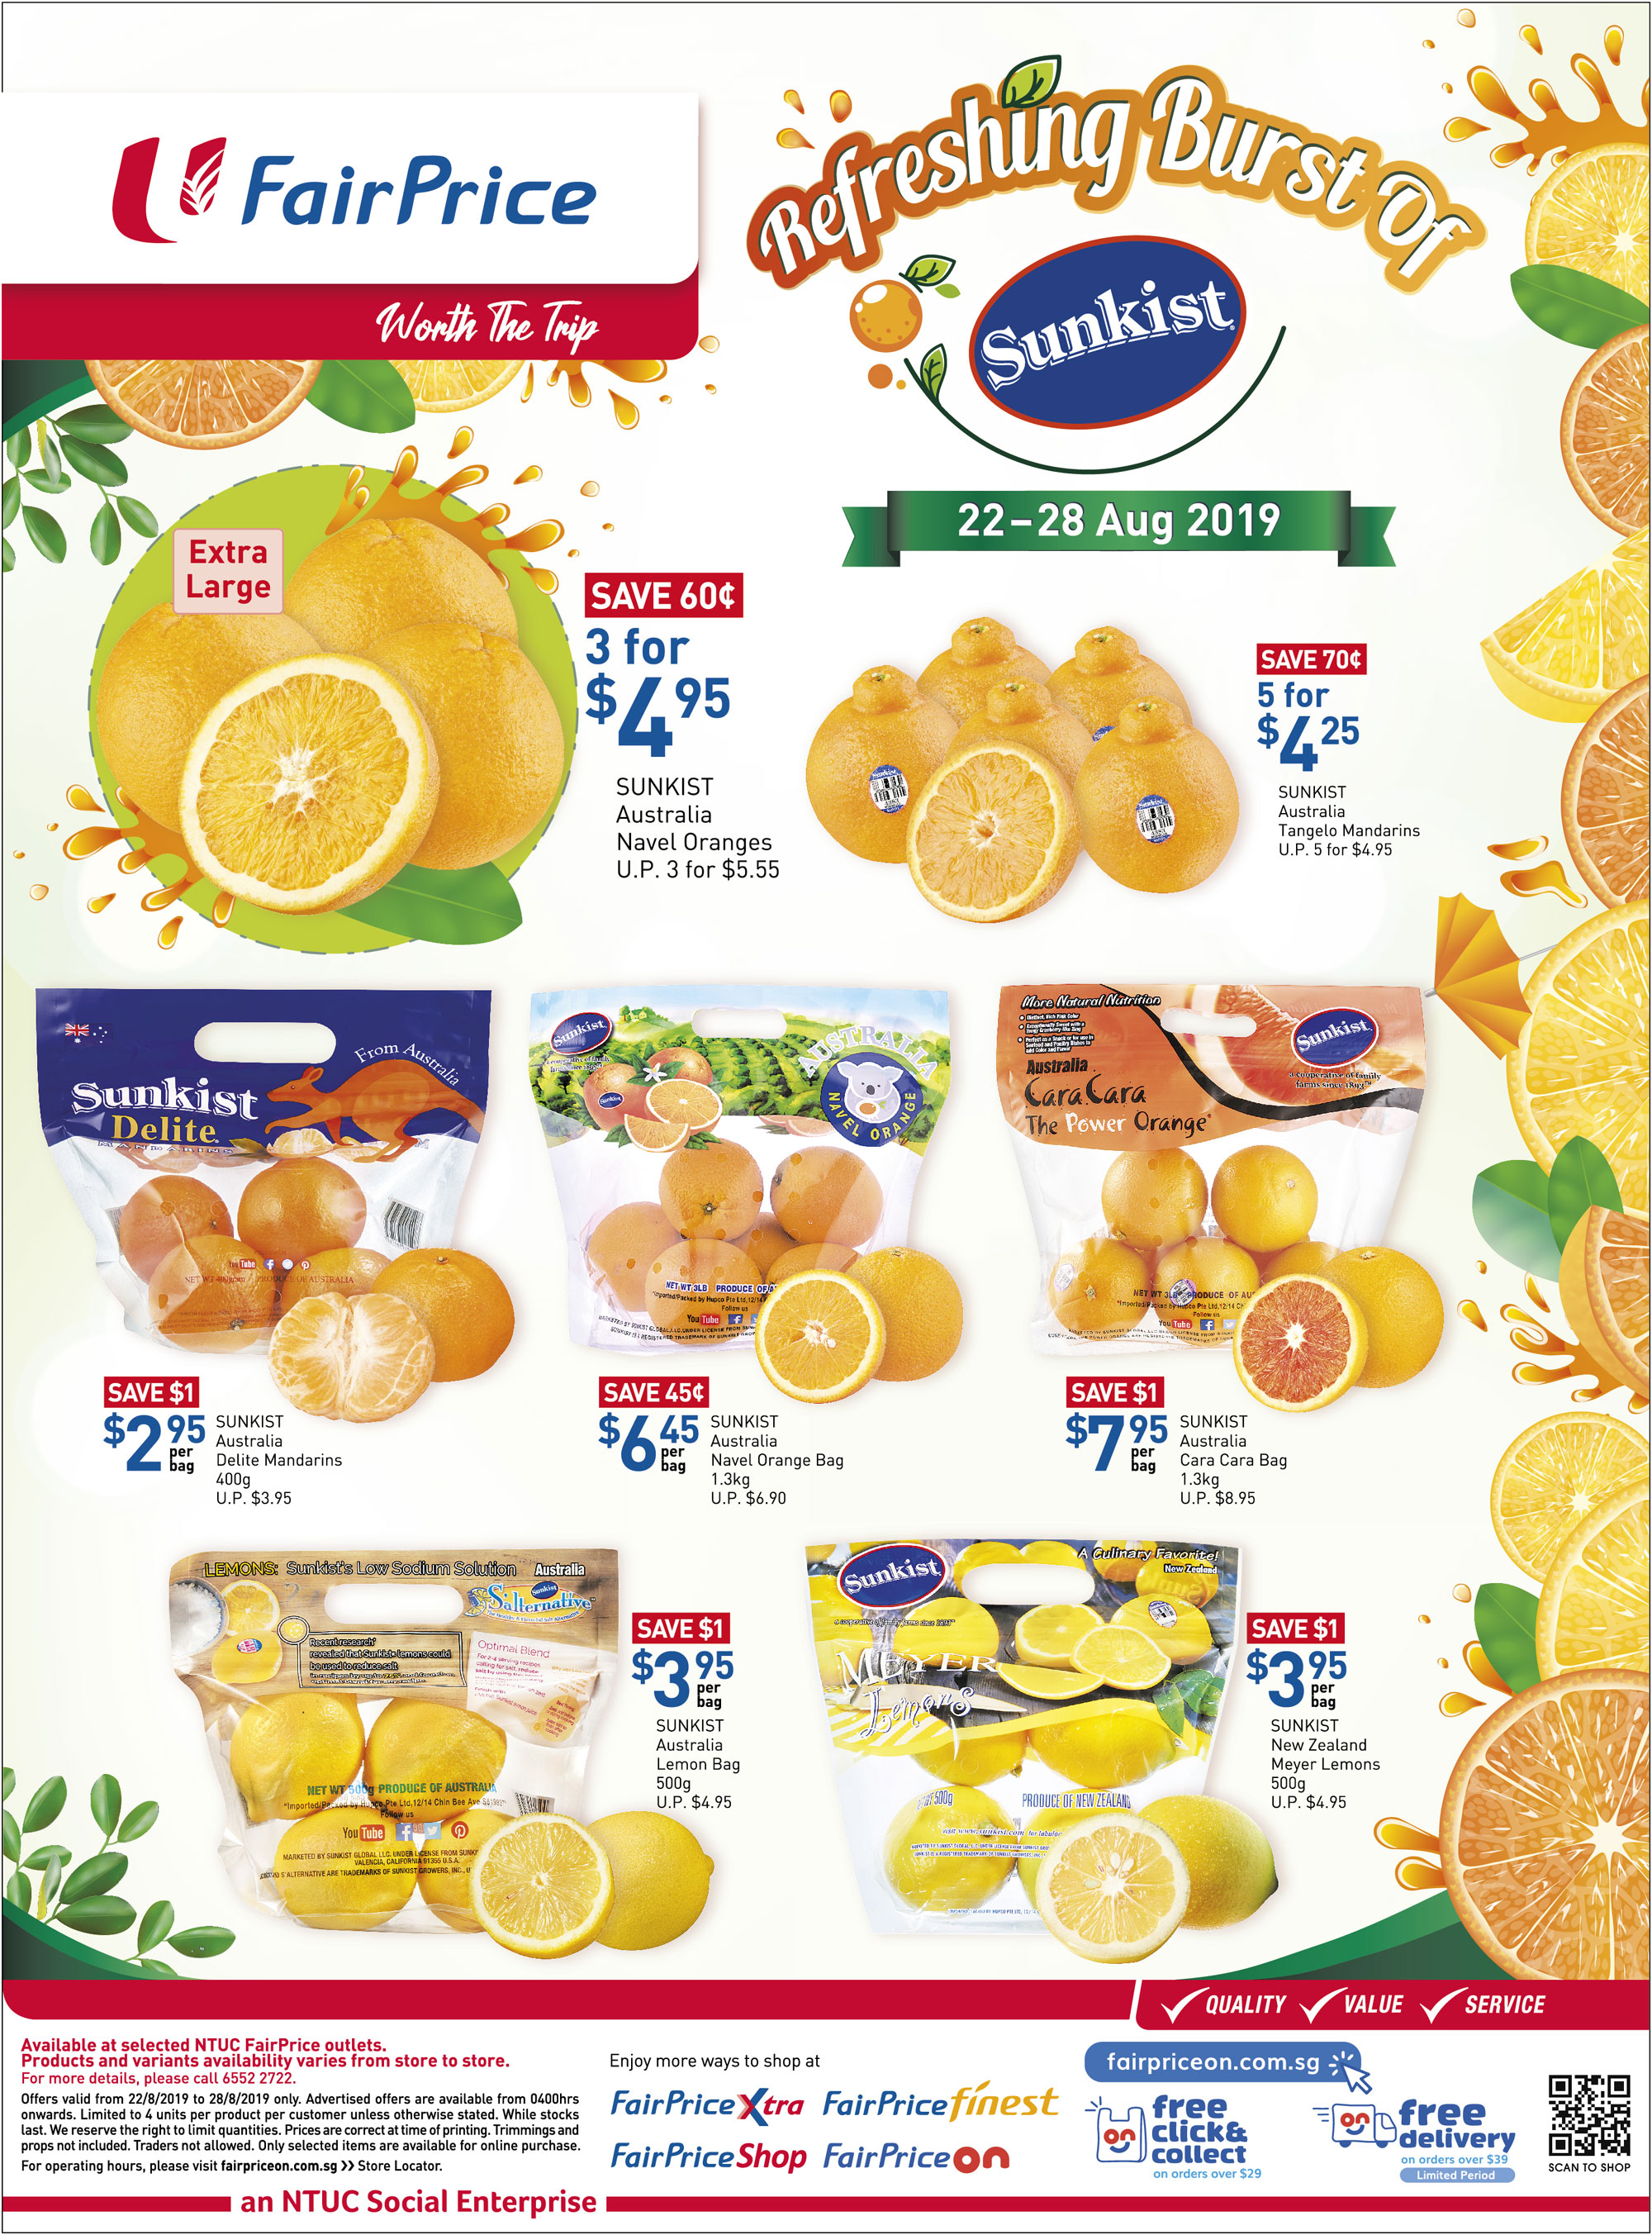 NTUC FairPrice Singapore Your Weekly Saver Promotion 22-28 Aug 2019 | Why Not Deals 4 & Promotions